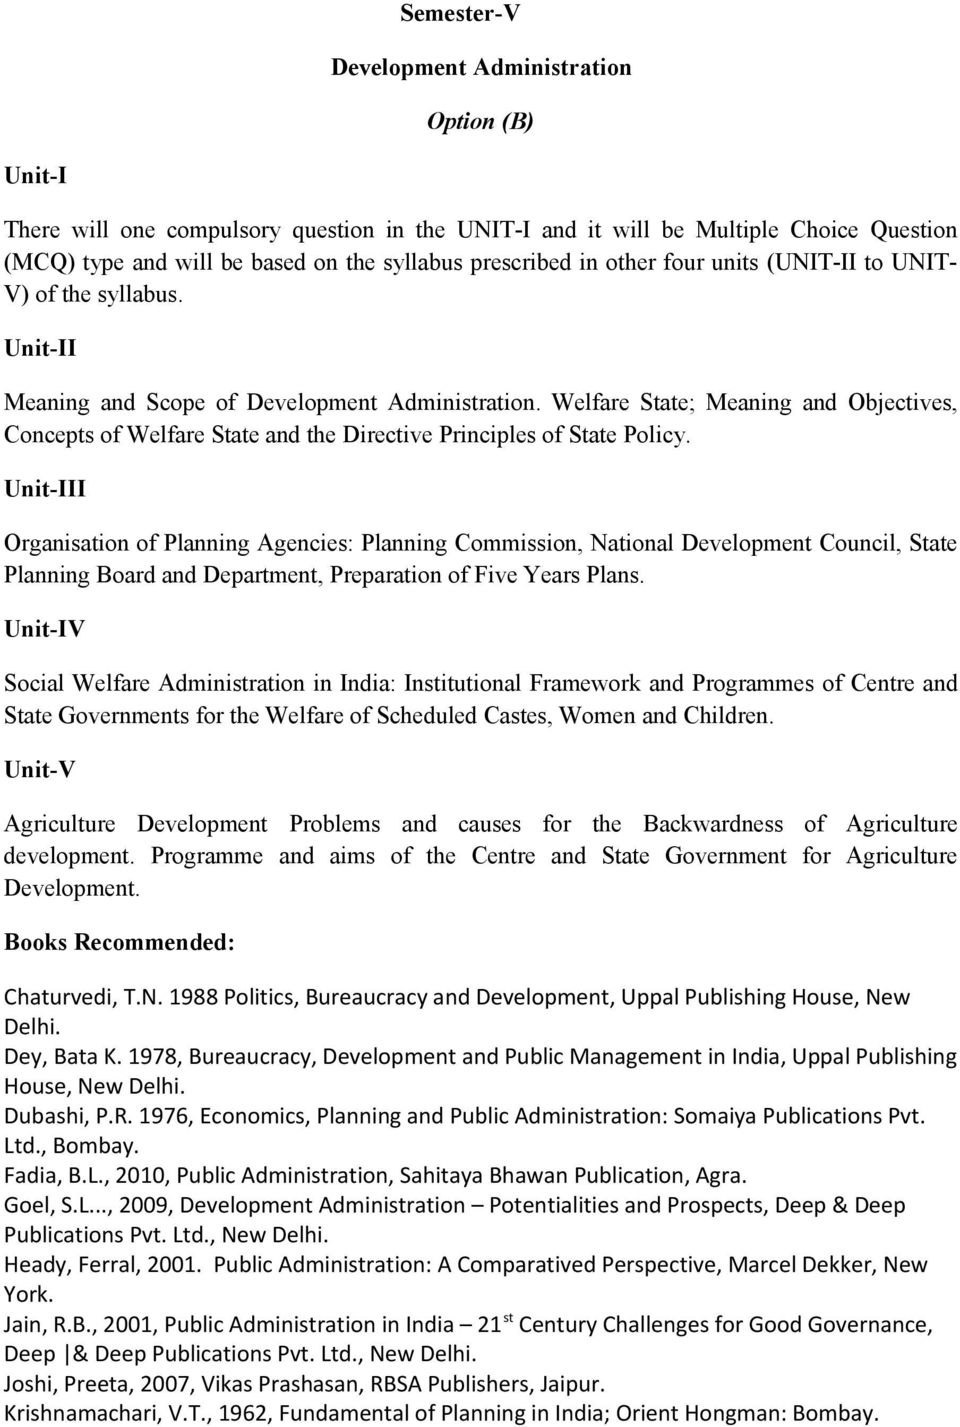 Organisation of Planning Agencies: Planning Commission, National Development Council, State Planning Board and Department, Preparation of Five Years Plans.